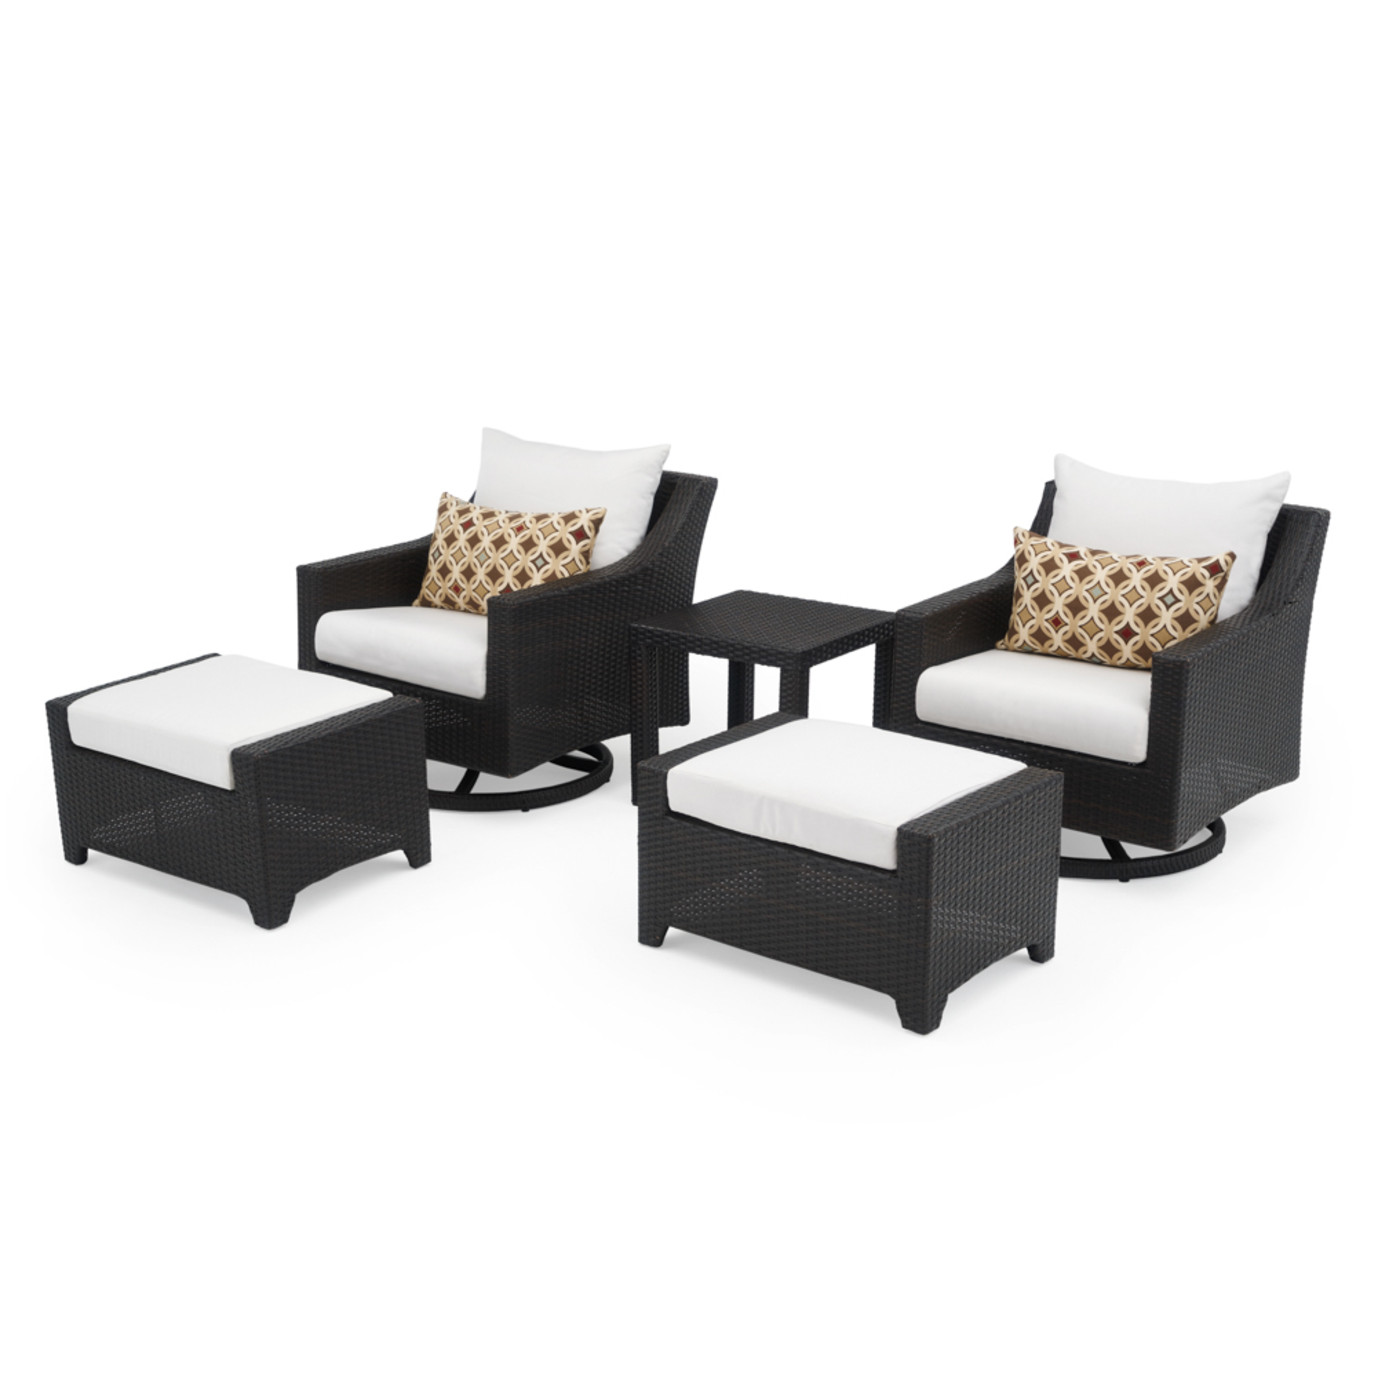 Deco 5 Piece Motion Club & Ottoman Set - Moroccan Cream